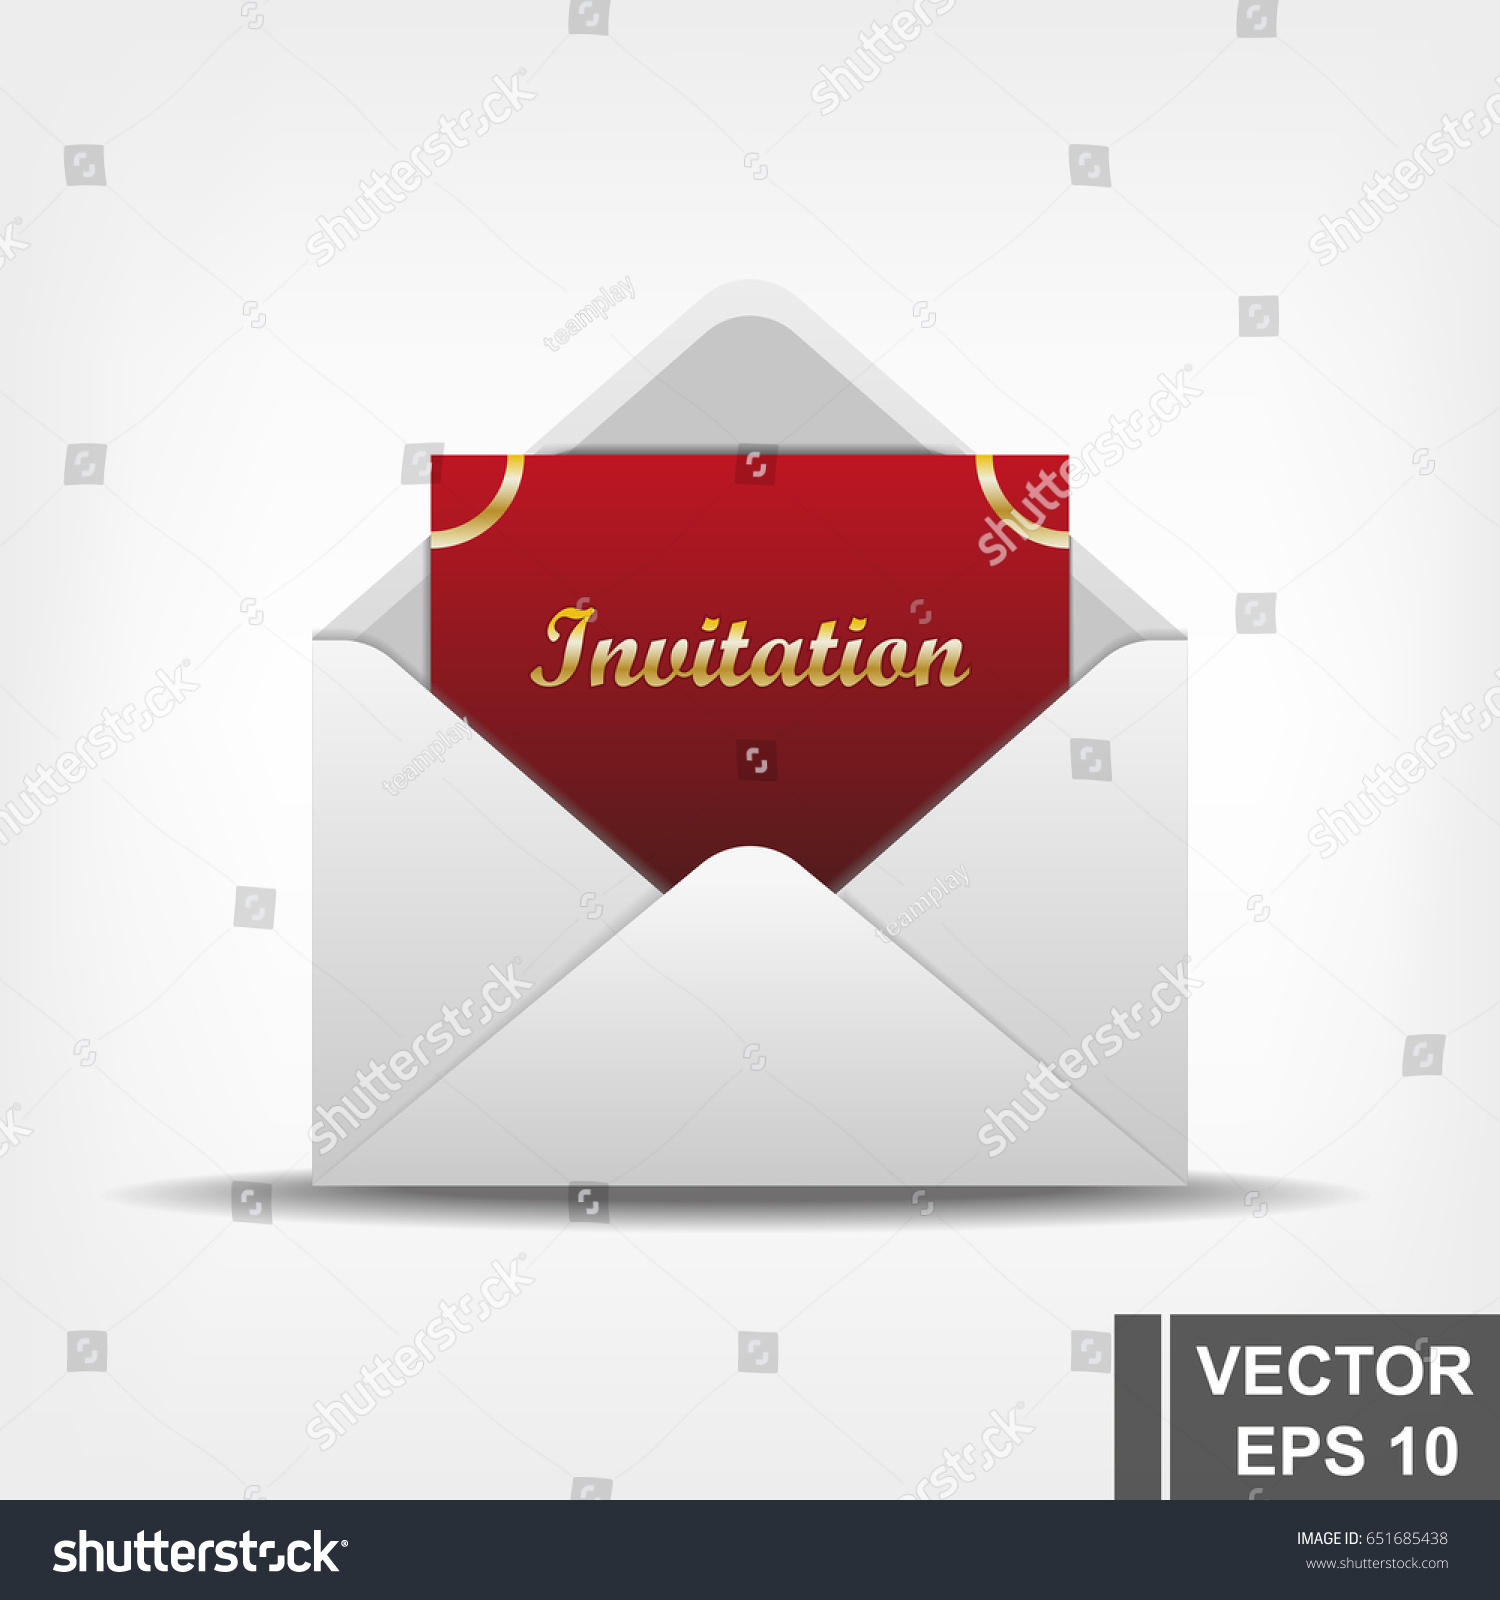 Knec invitation letter image collections invitation sample and invitation letter j1 image collections invitation sample and invitation letter envelope sample choice image invitation sample stopboris Image collections